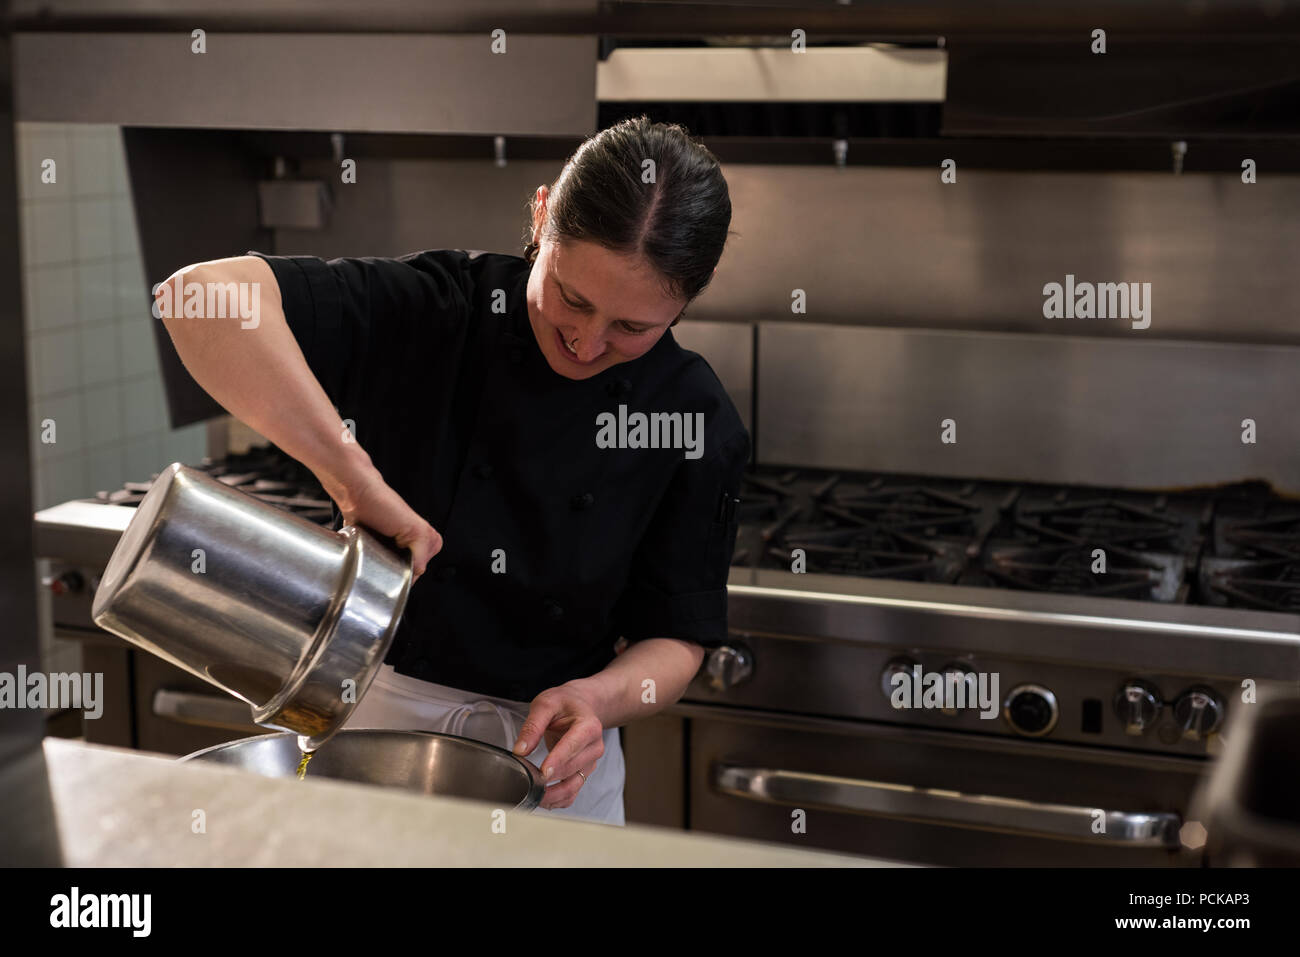 Chef pouring oil into a container - Stock Image